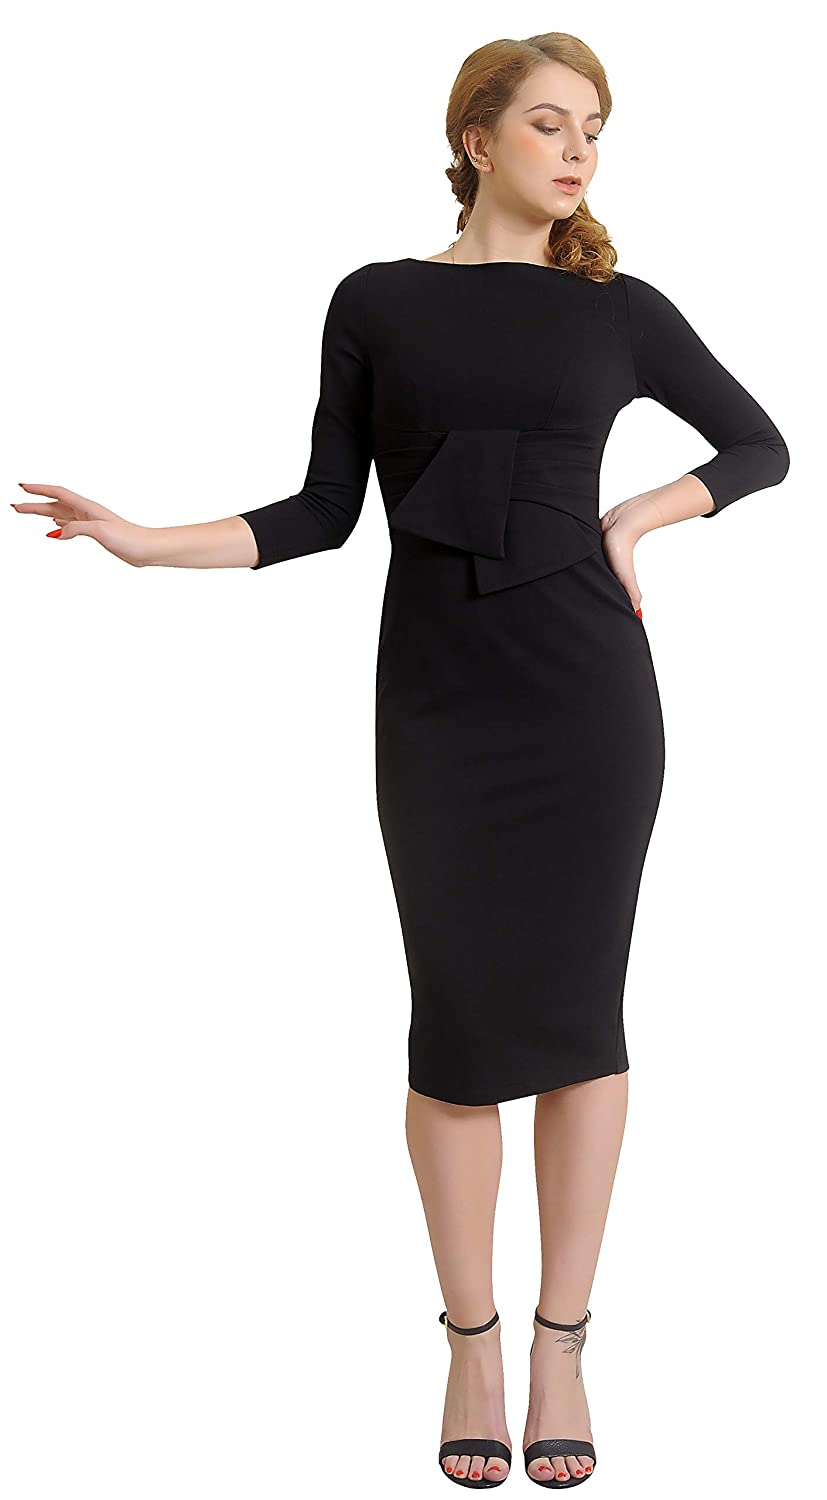 1950s Pencil Dresses & Wiggle Dress Styles Marycrafts Womens Elegant Lady Vintage Evening Wiggle Midi Dress $22.99 AT vintagedancer.com